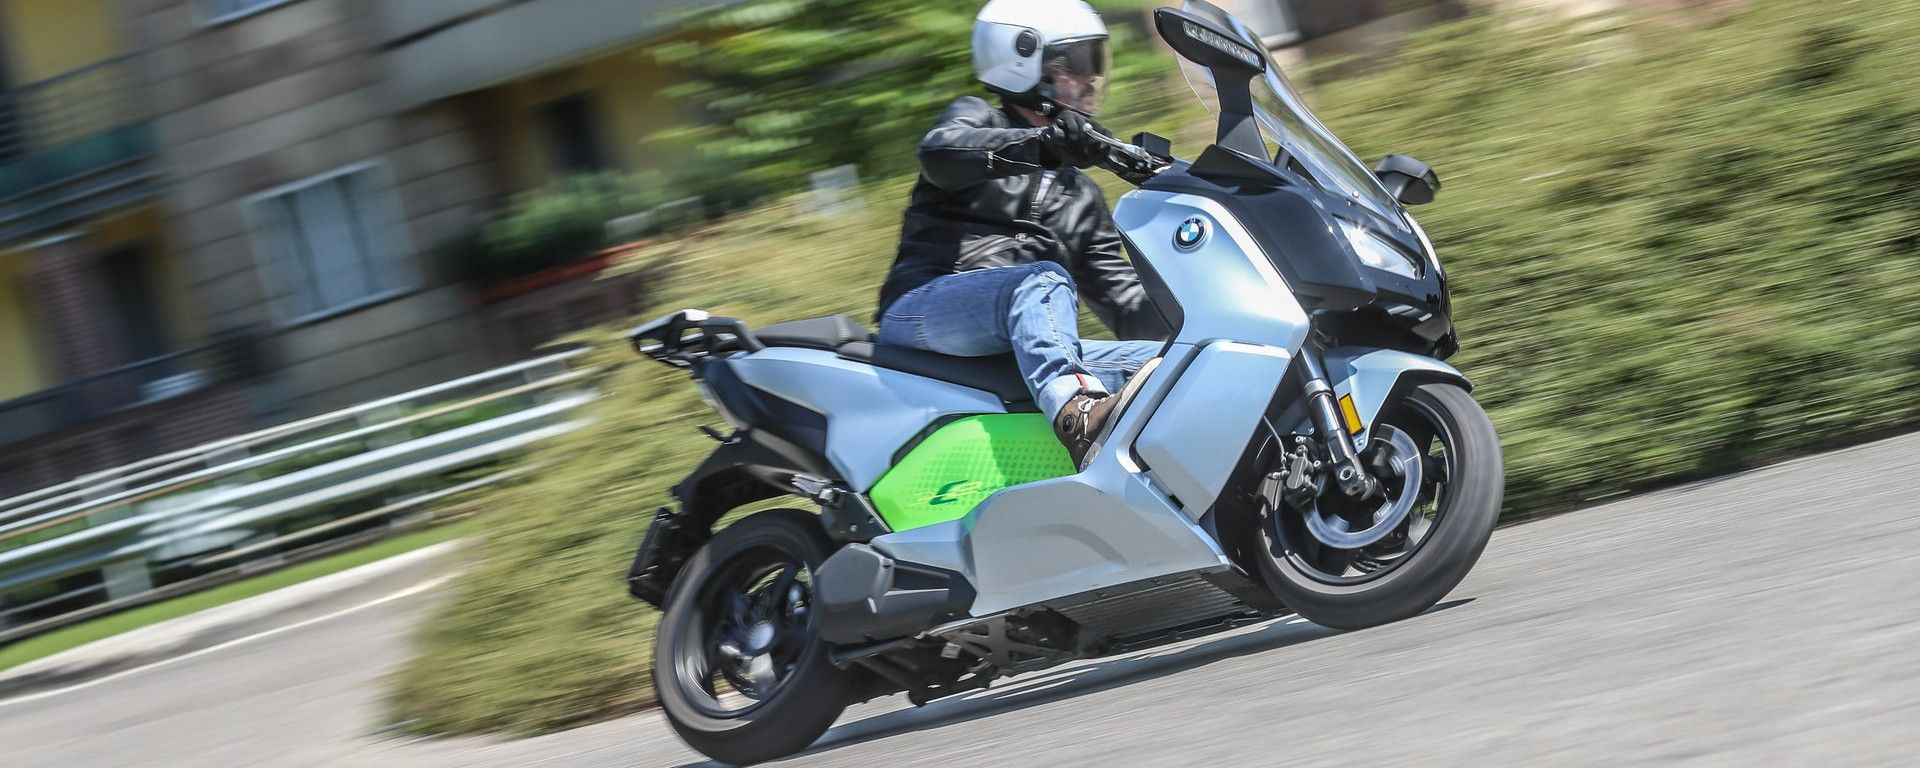 BMW C Evolution Long Range: il test ride